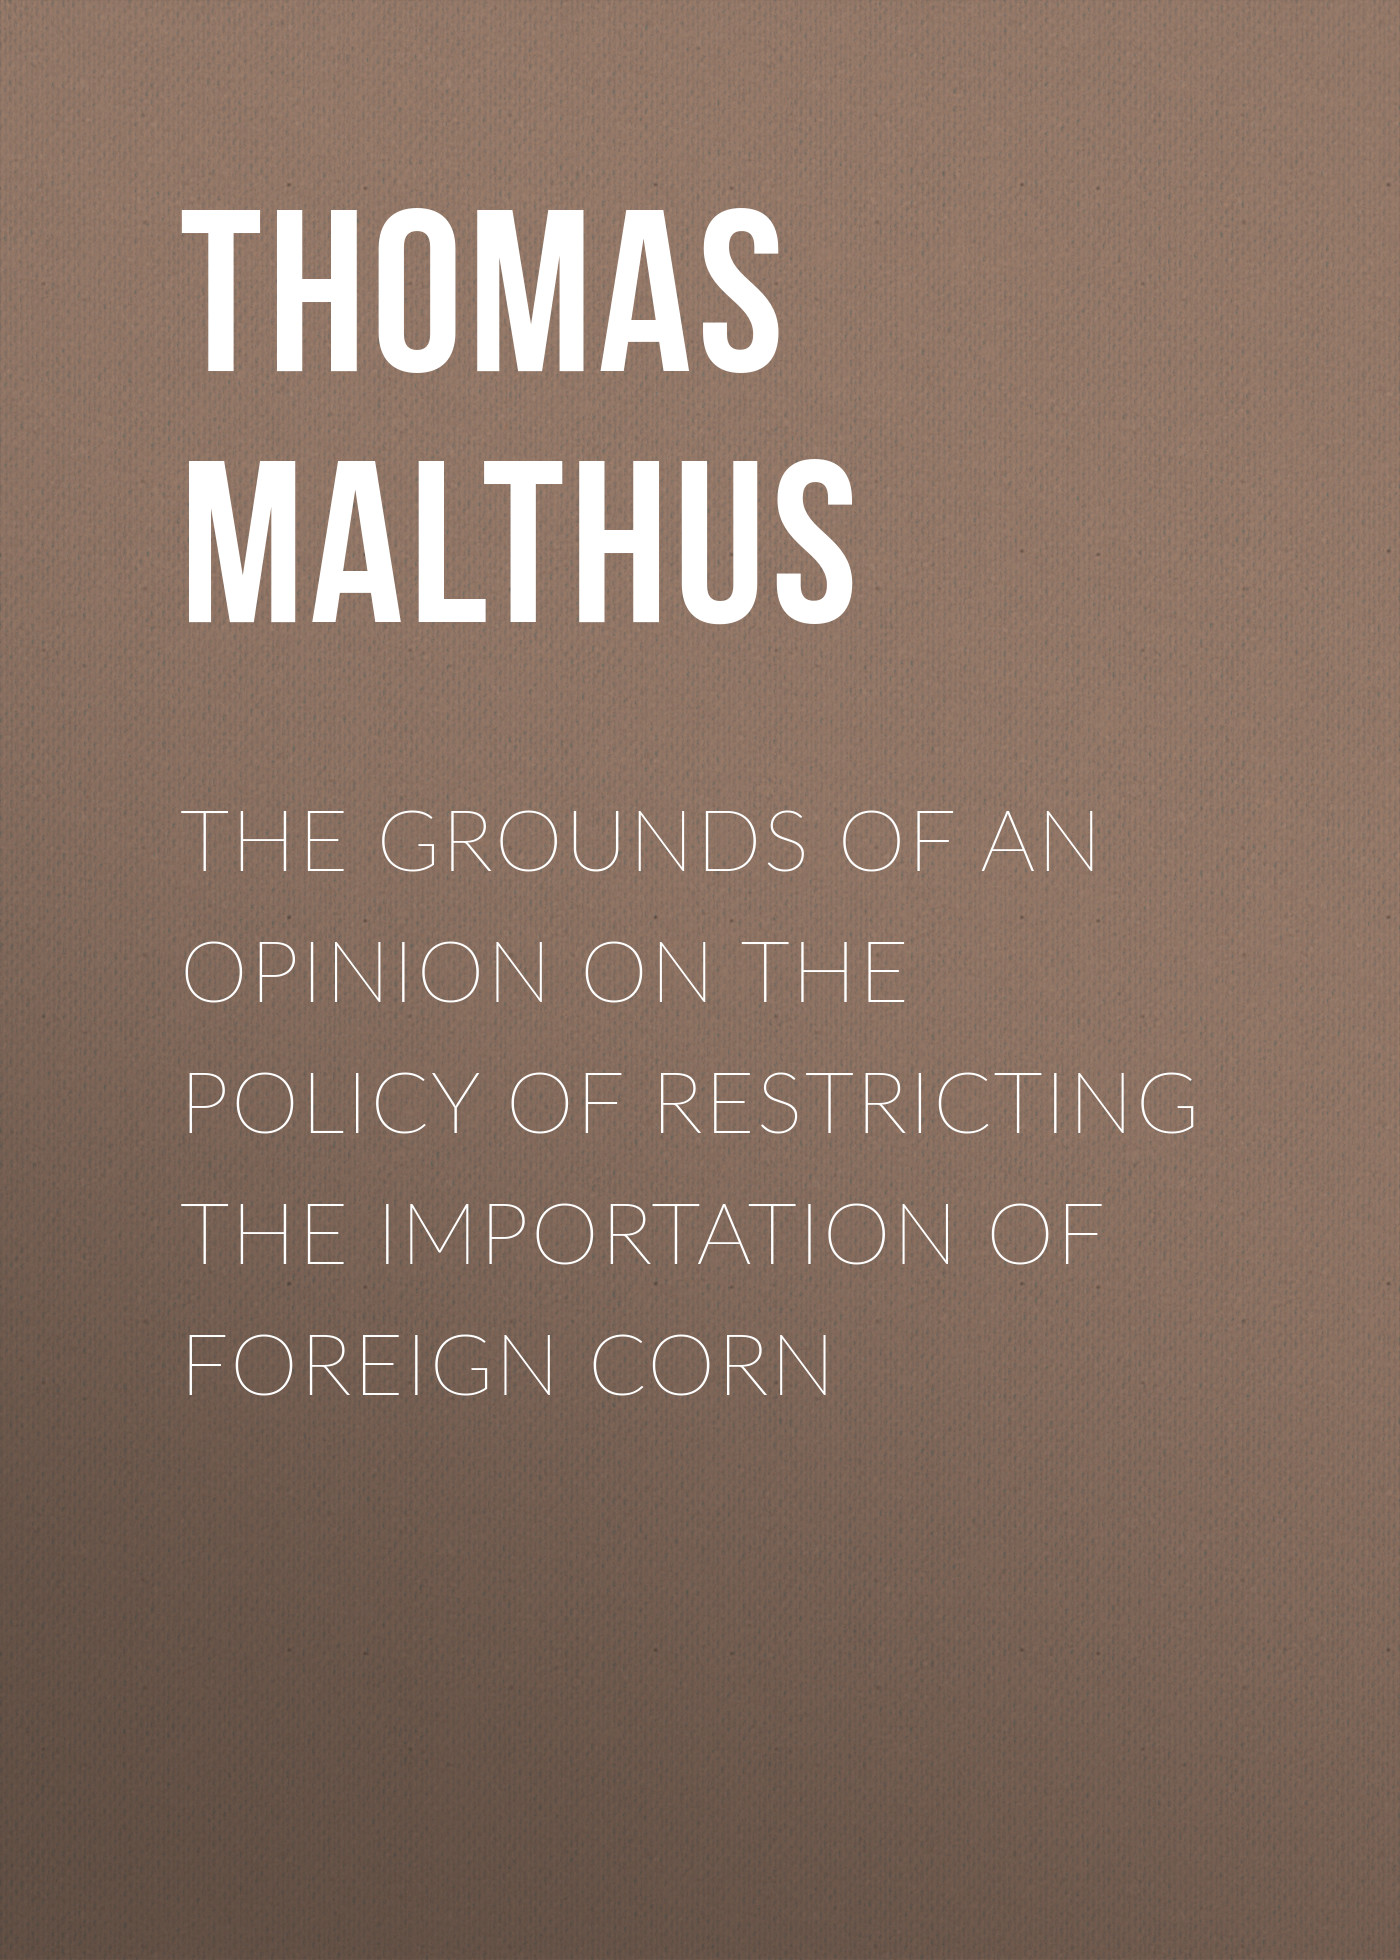 Thomas Malthus The Grounds of an Opinion on the Policy of Restricting the Importation of Foreign Corn thomas paine the political works of thomas paine secretary for foreign affairs to the congress of the united